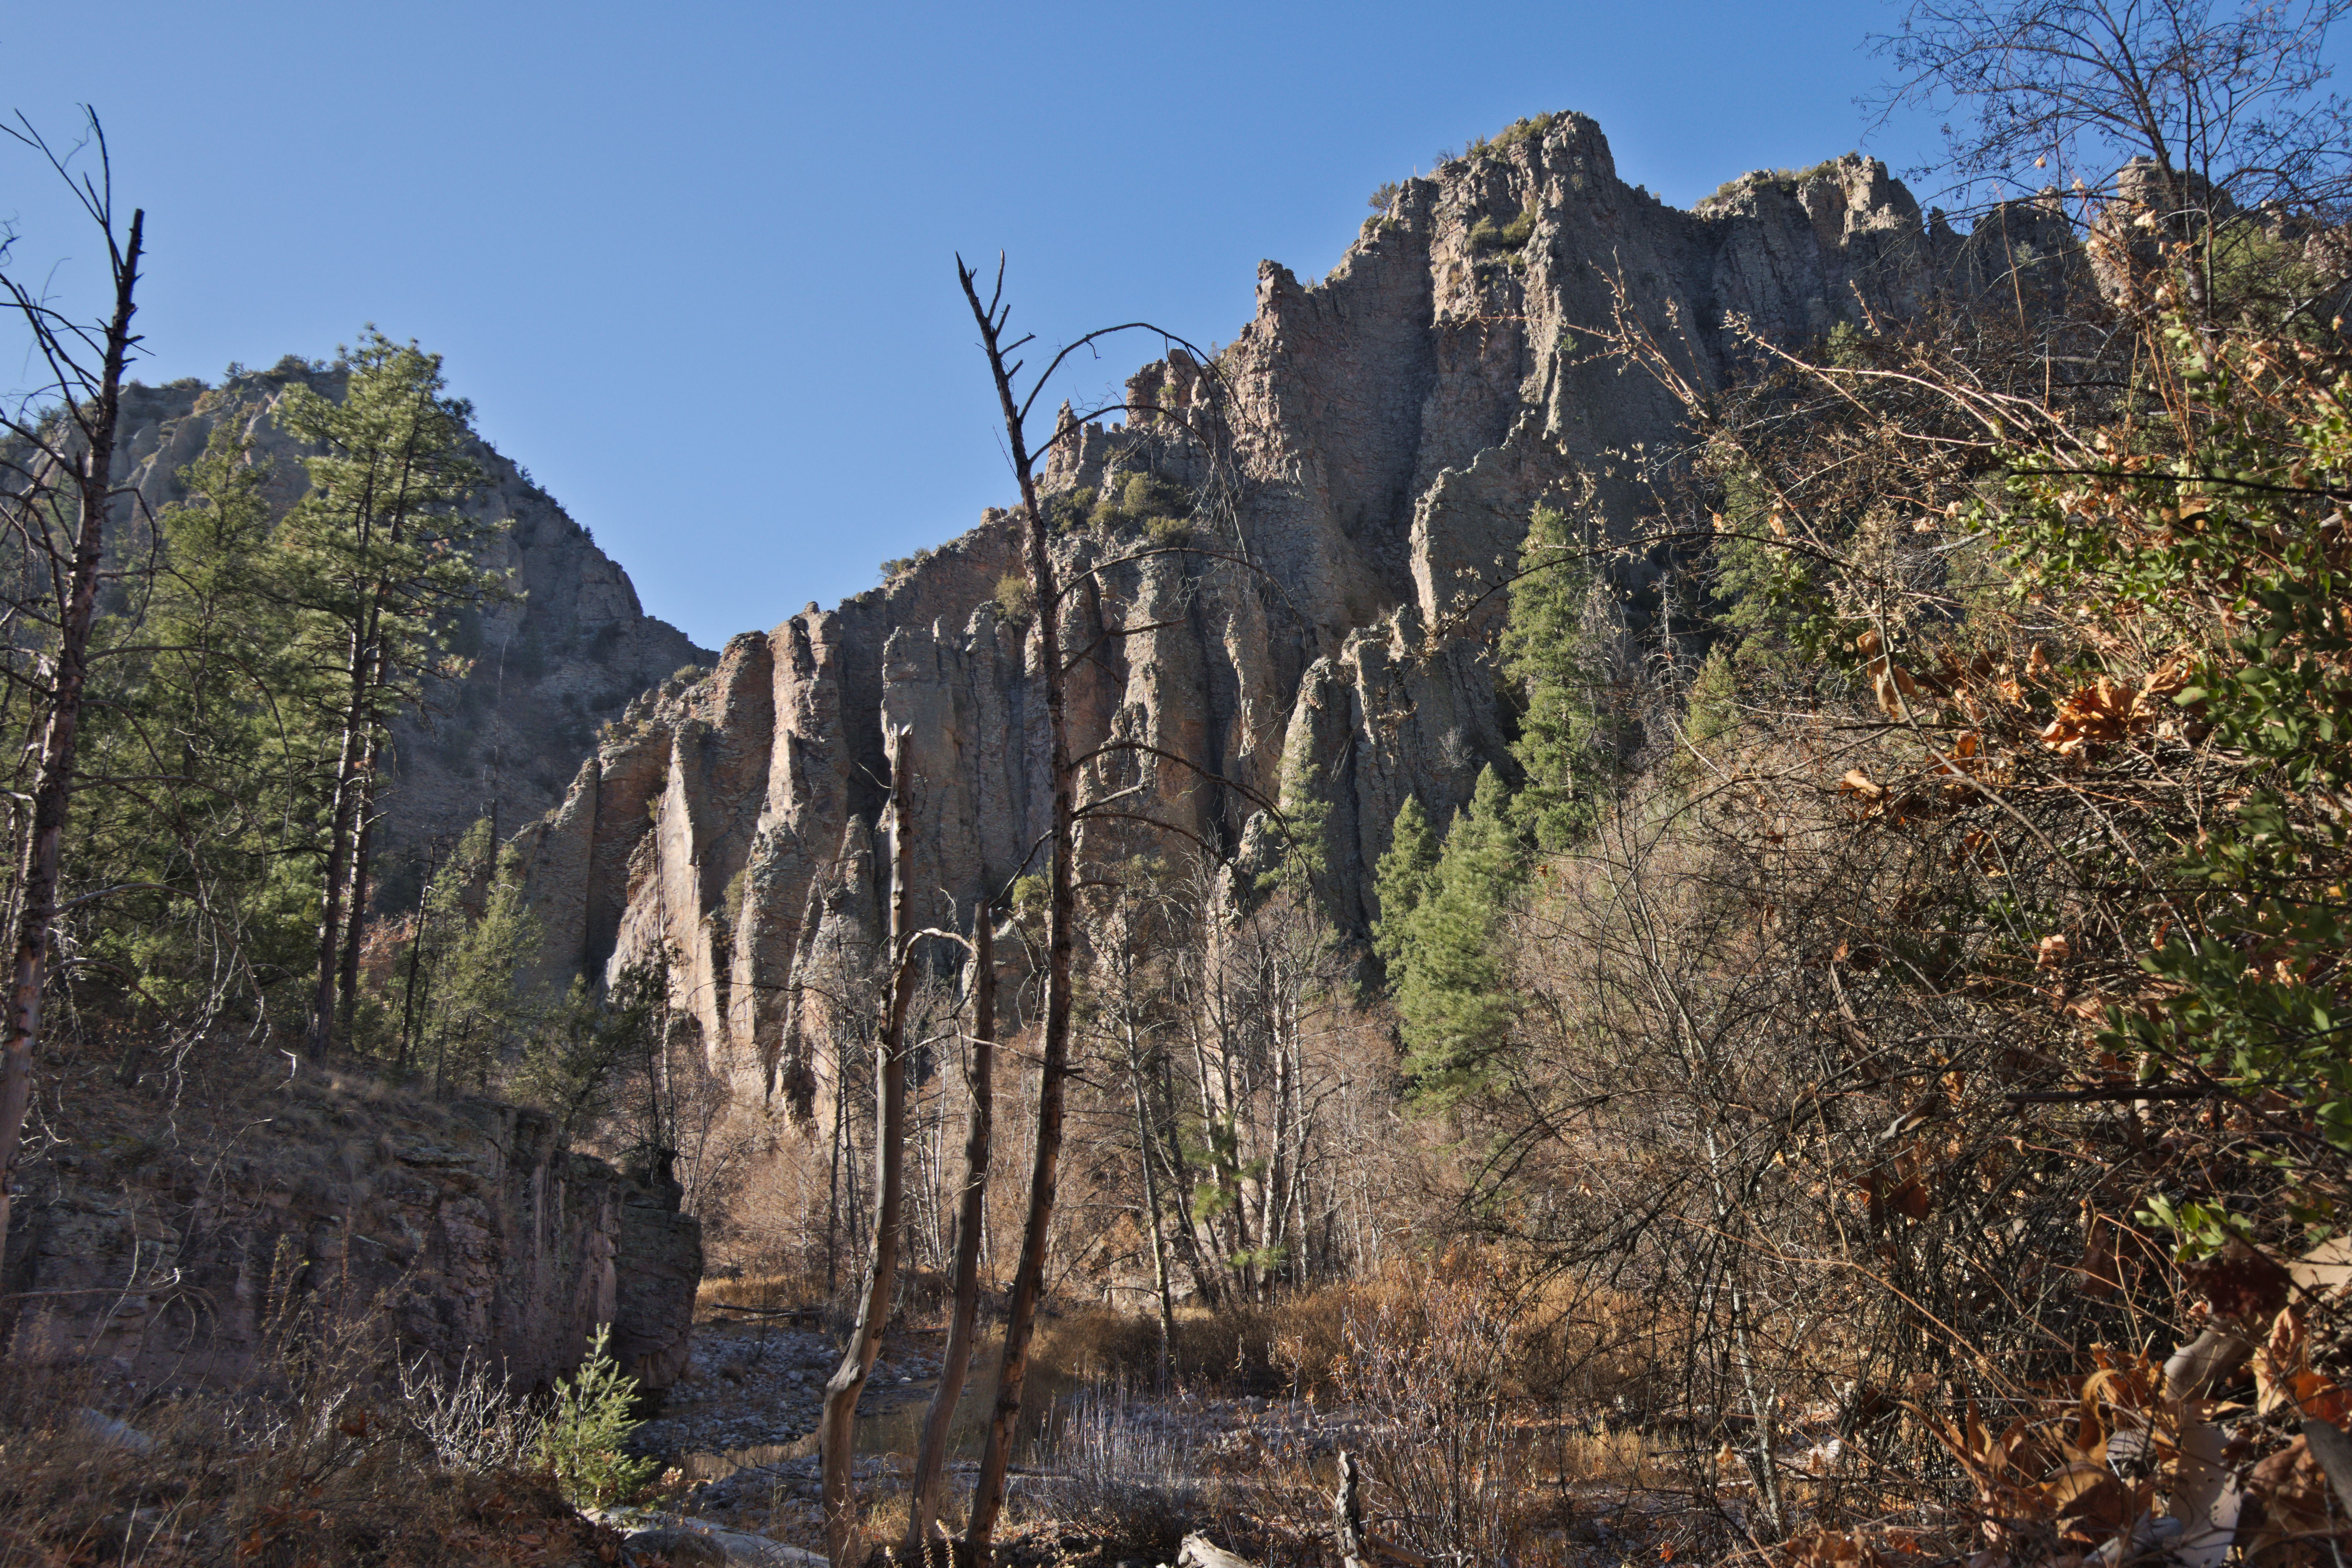 West fork of the Gila River Canyon